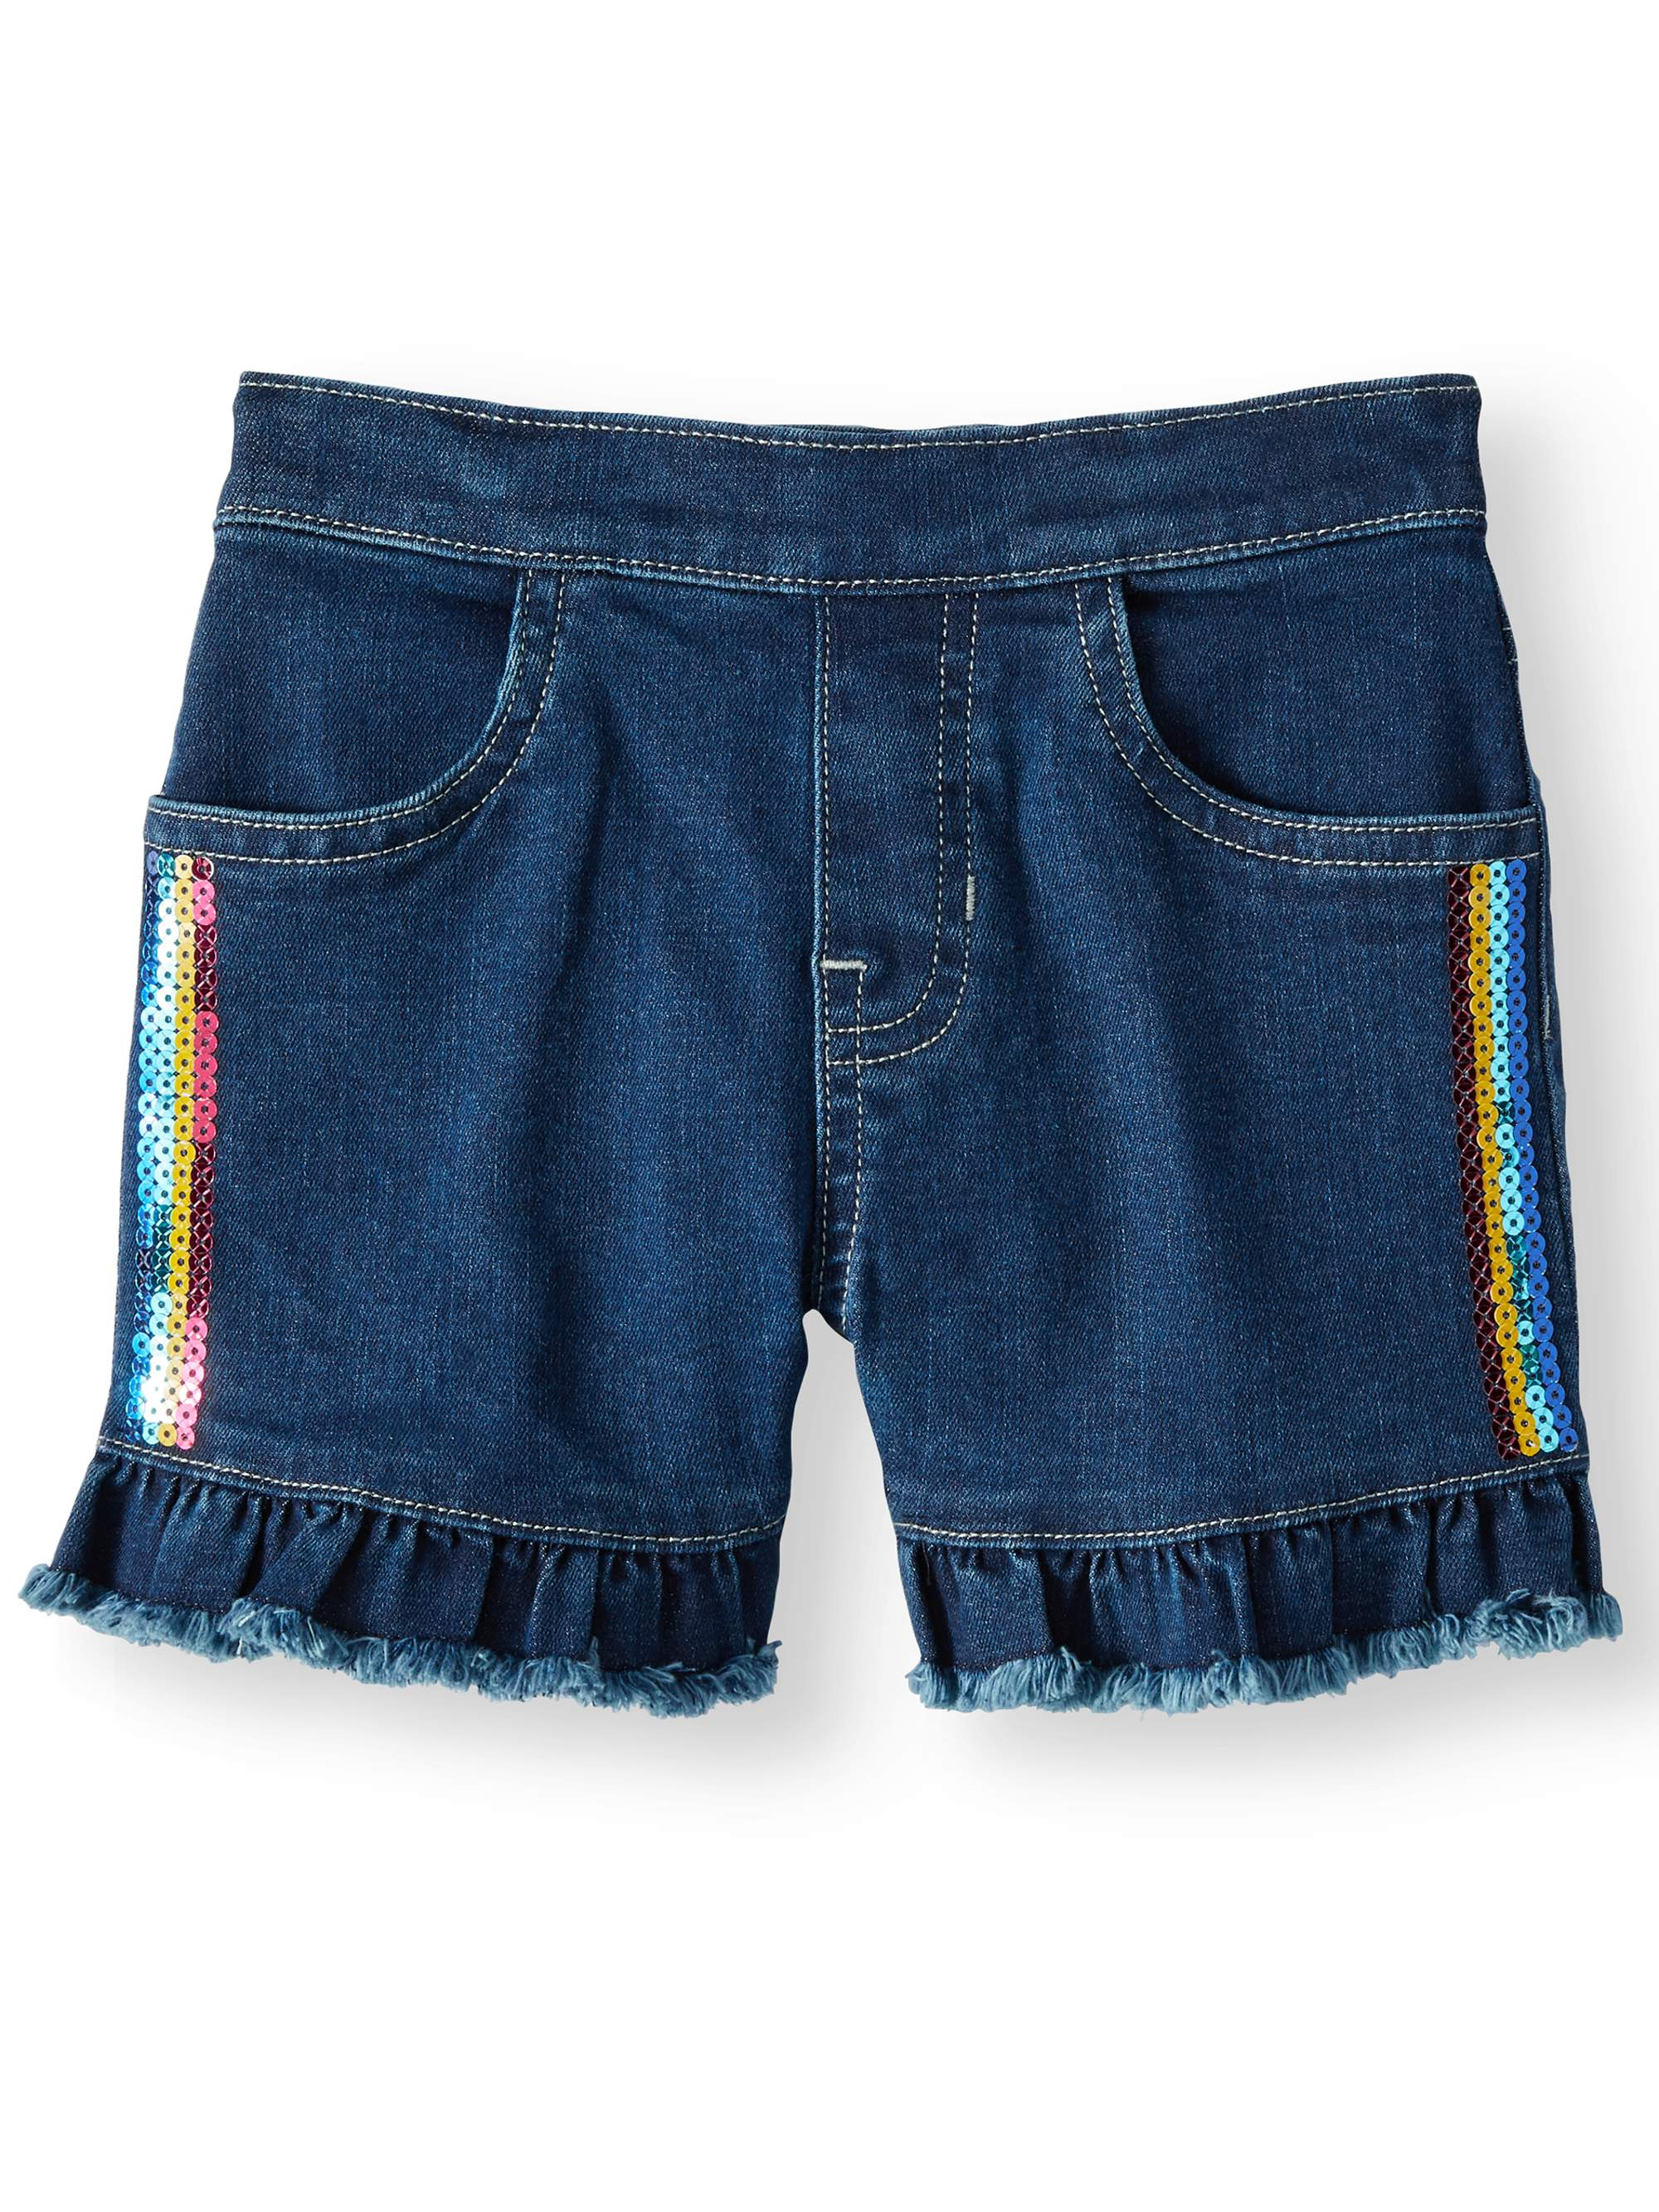 Denim Ruffle Short with Rainbow Sequins (Little Girls & Big Girls)